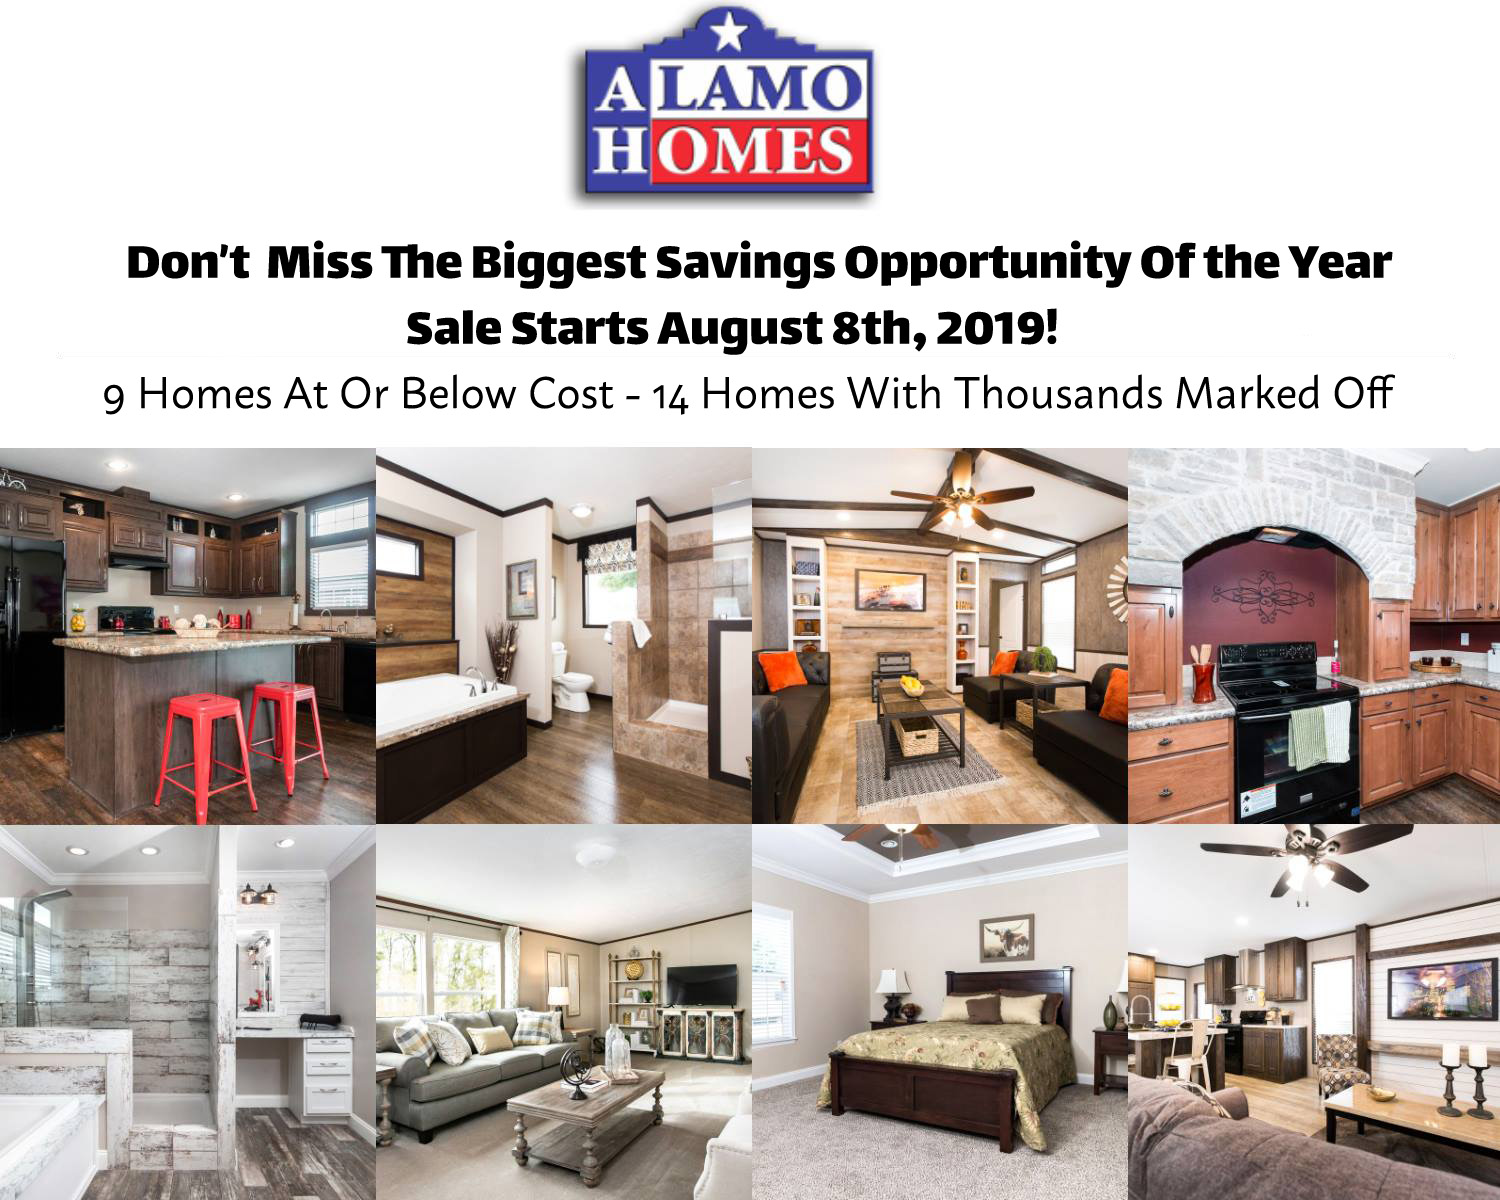 Alamo Homes - The Best Texas Mobile, Manufactured & Modular ... on value of 1973 mobile home, 1973 taylor mobile home, 1973 single wide mobile home, 1973 liberty mobile home,